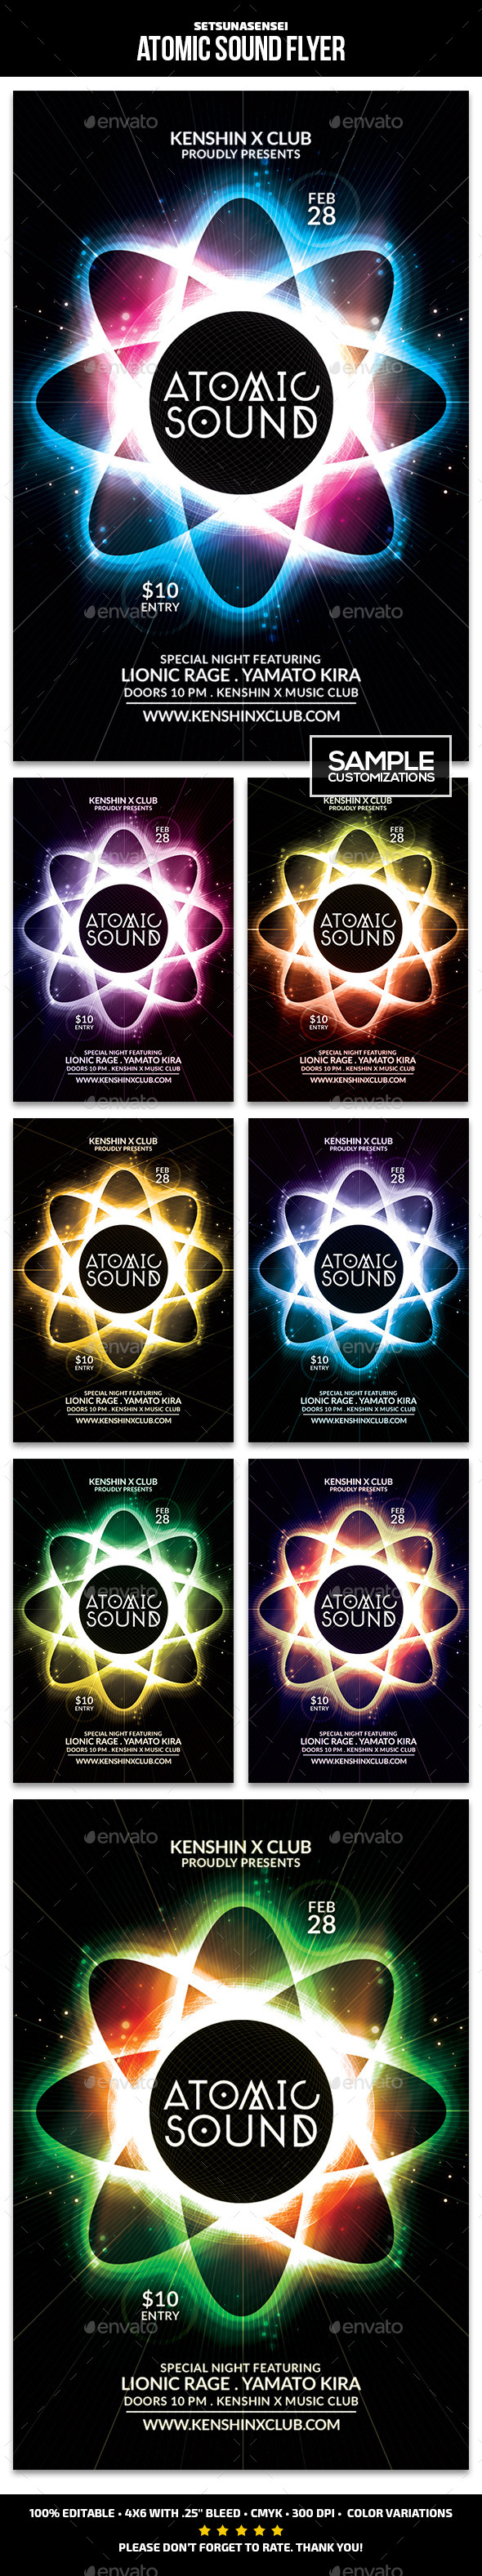 Atomic Sound Flyer - Clubs & Parties Events